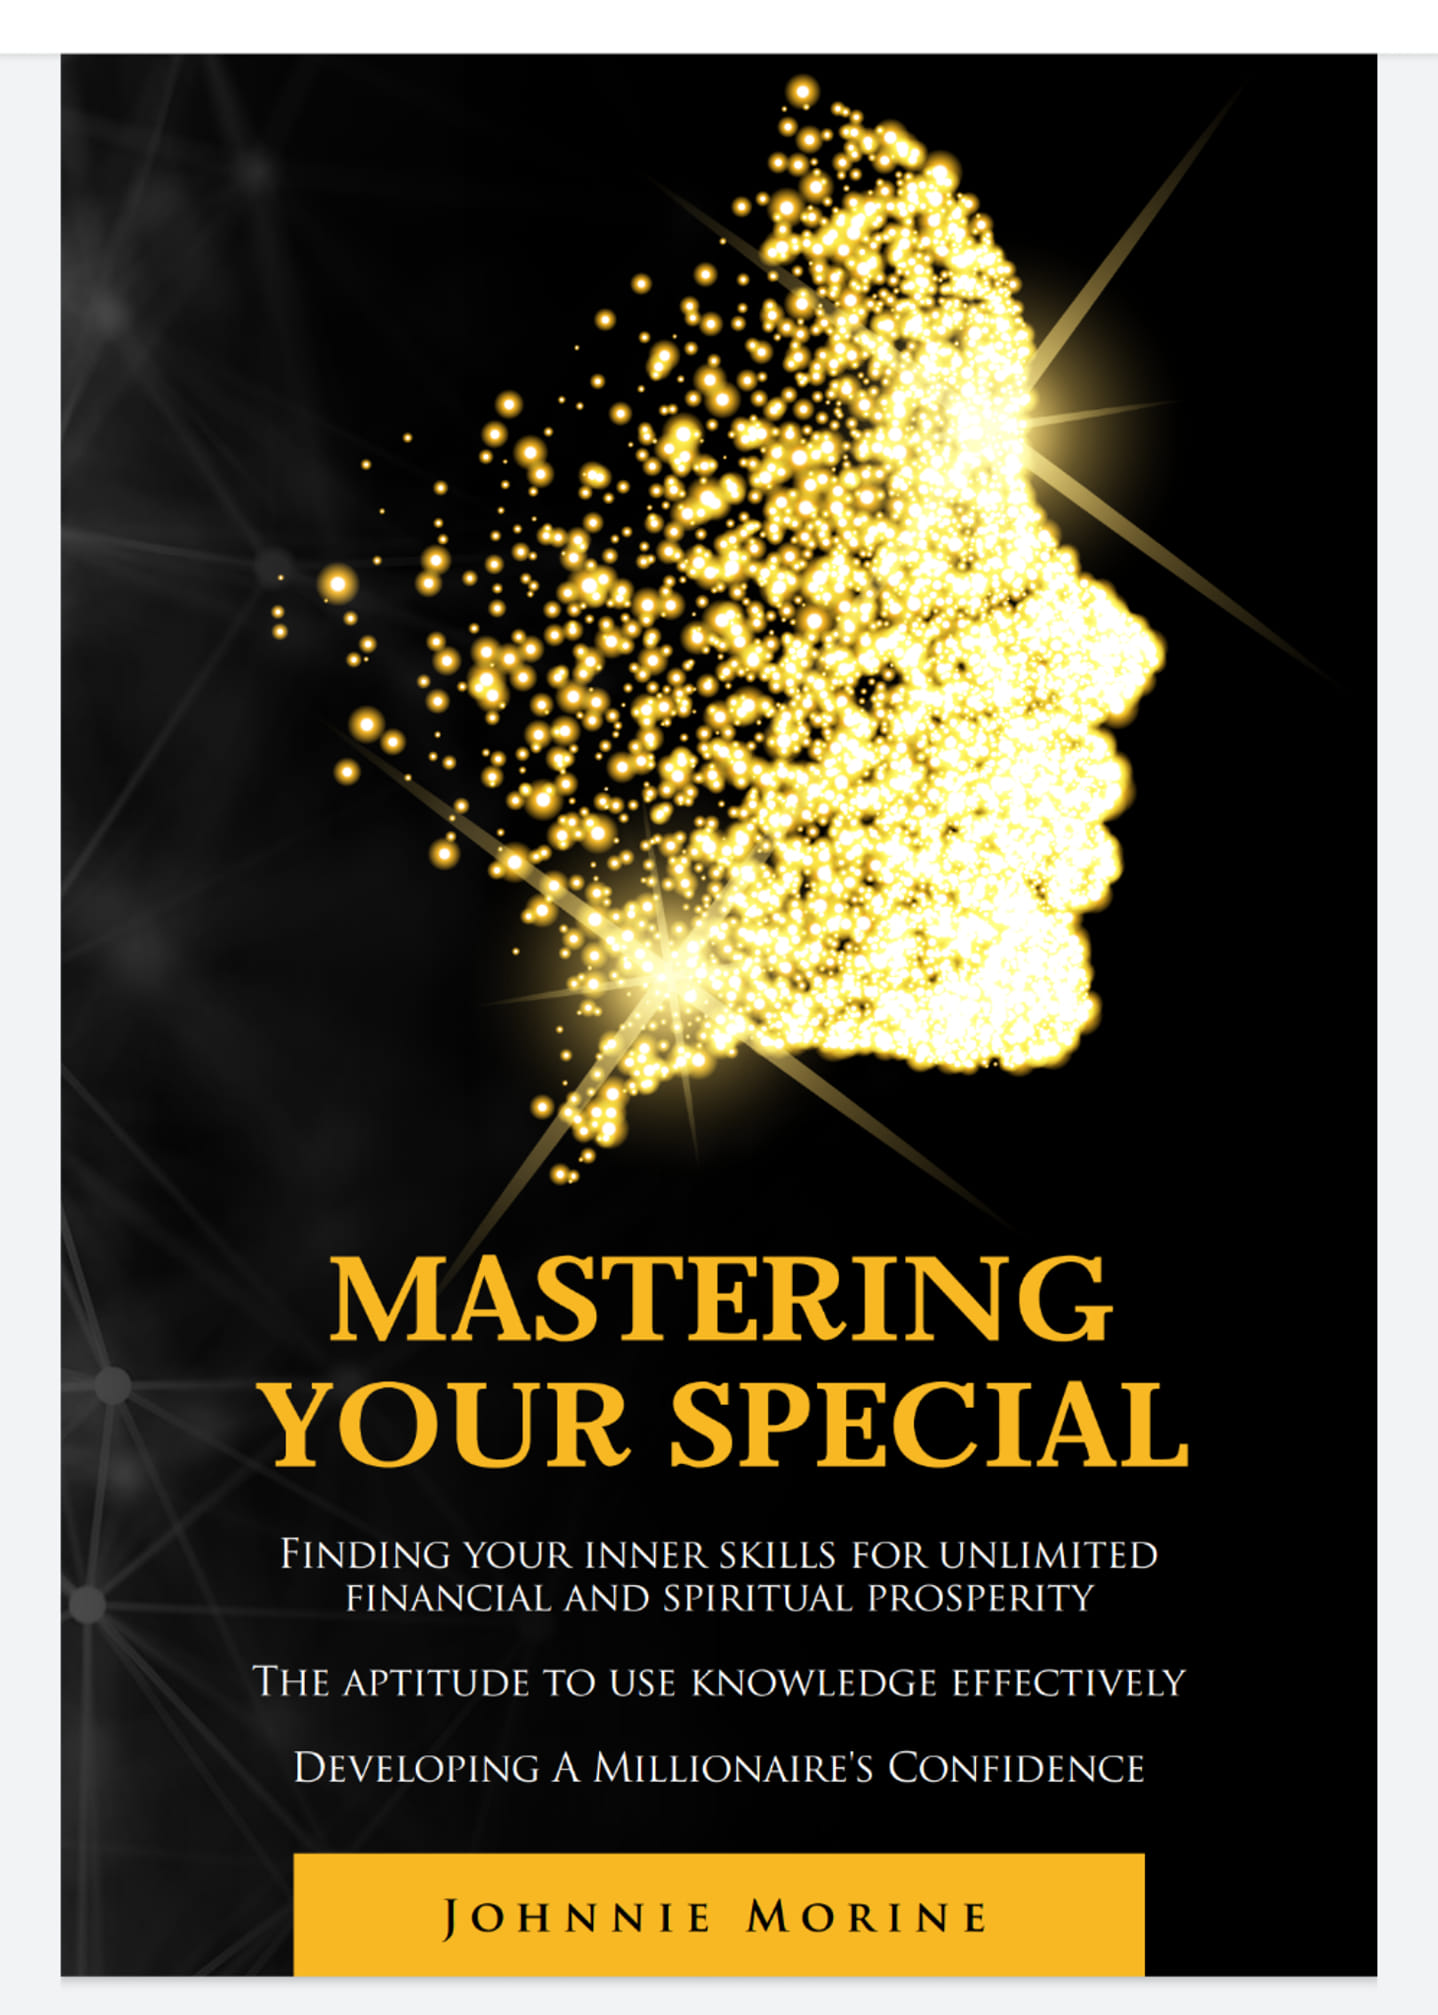 MASTERING YOUR SPECIAL BY JOHNNIE MORINE